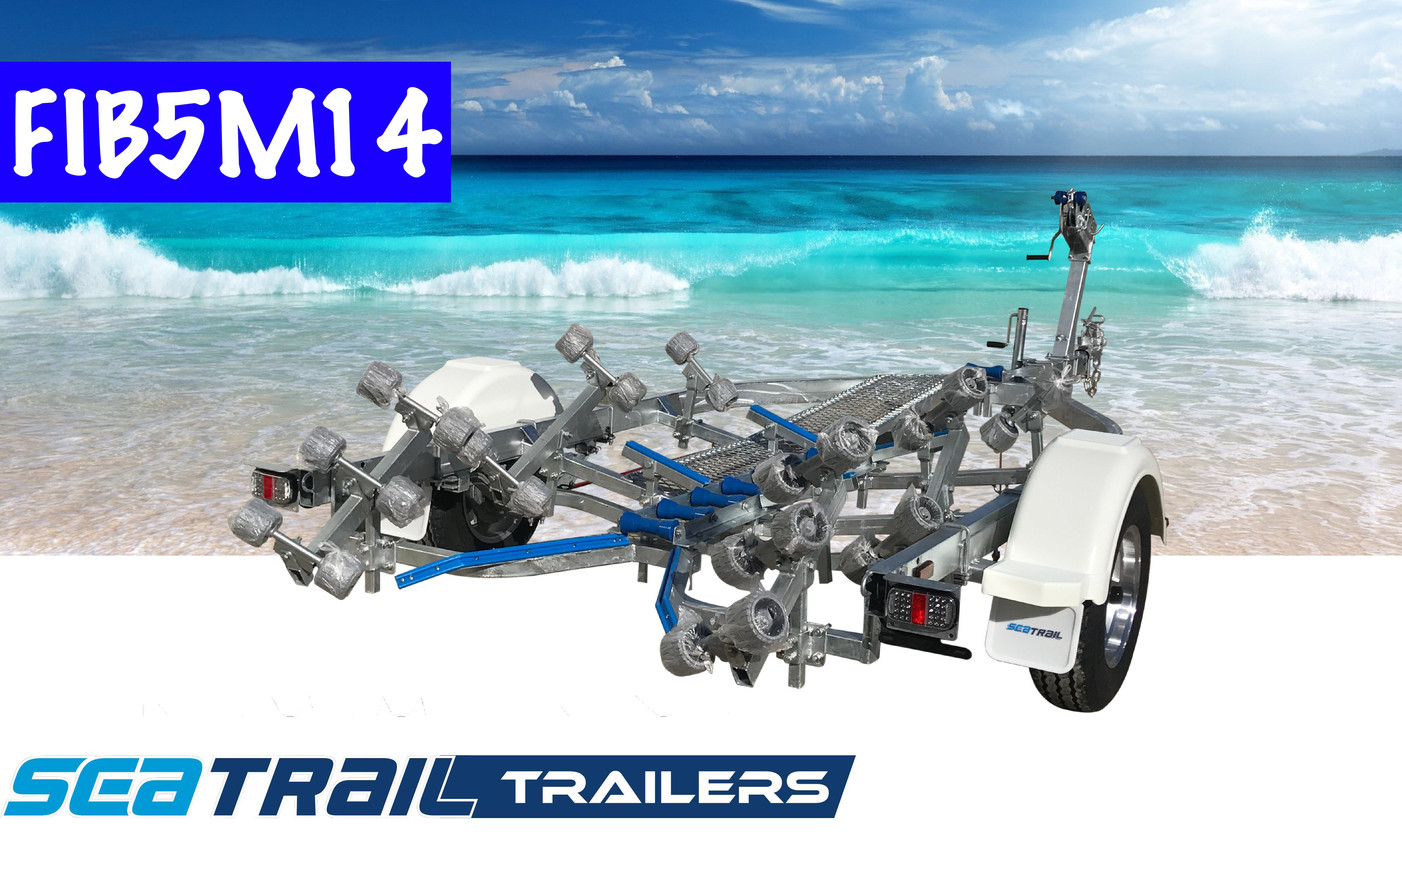 SEATRAIL FIB5M14 DELUXE ROLLERED BOAT TRAILER